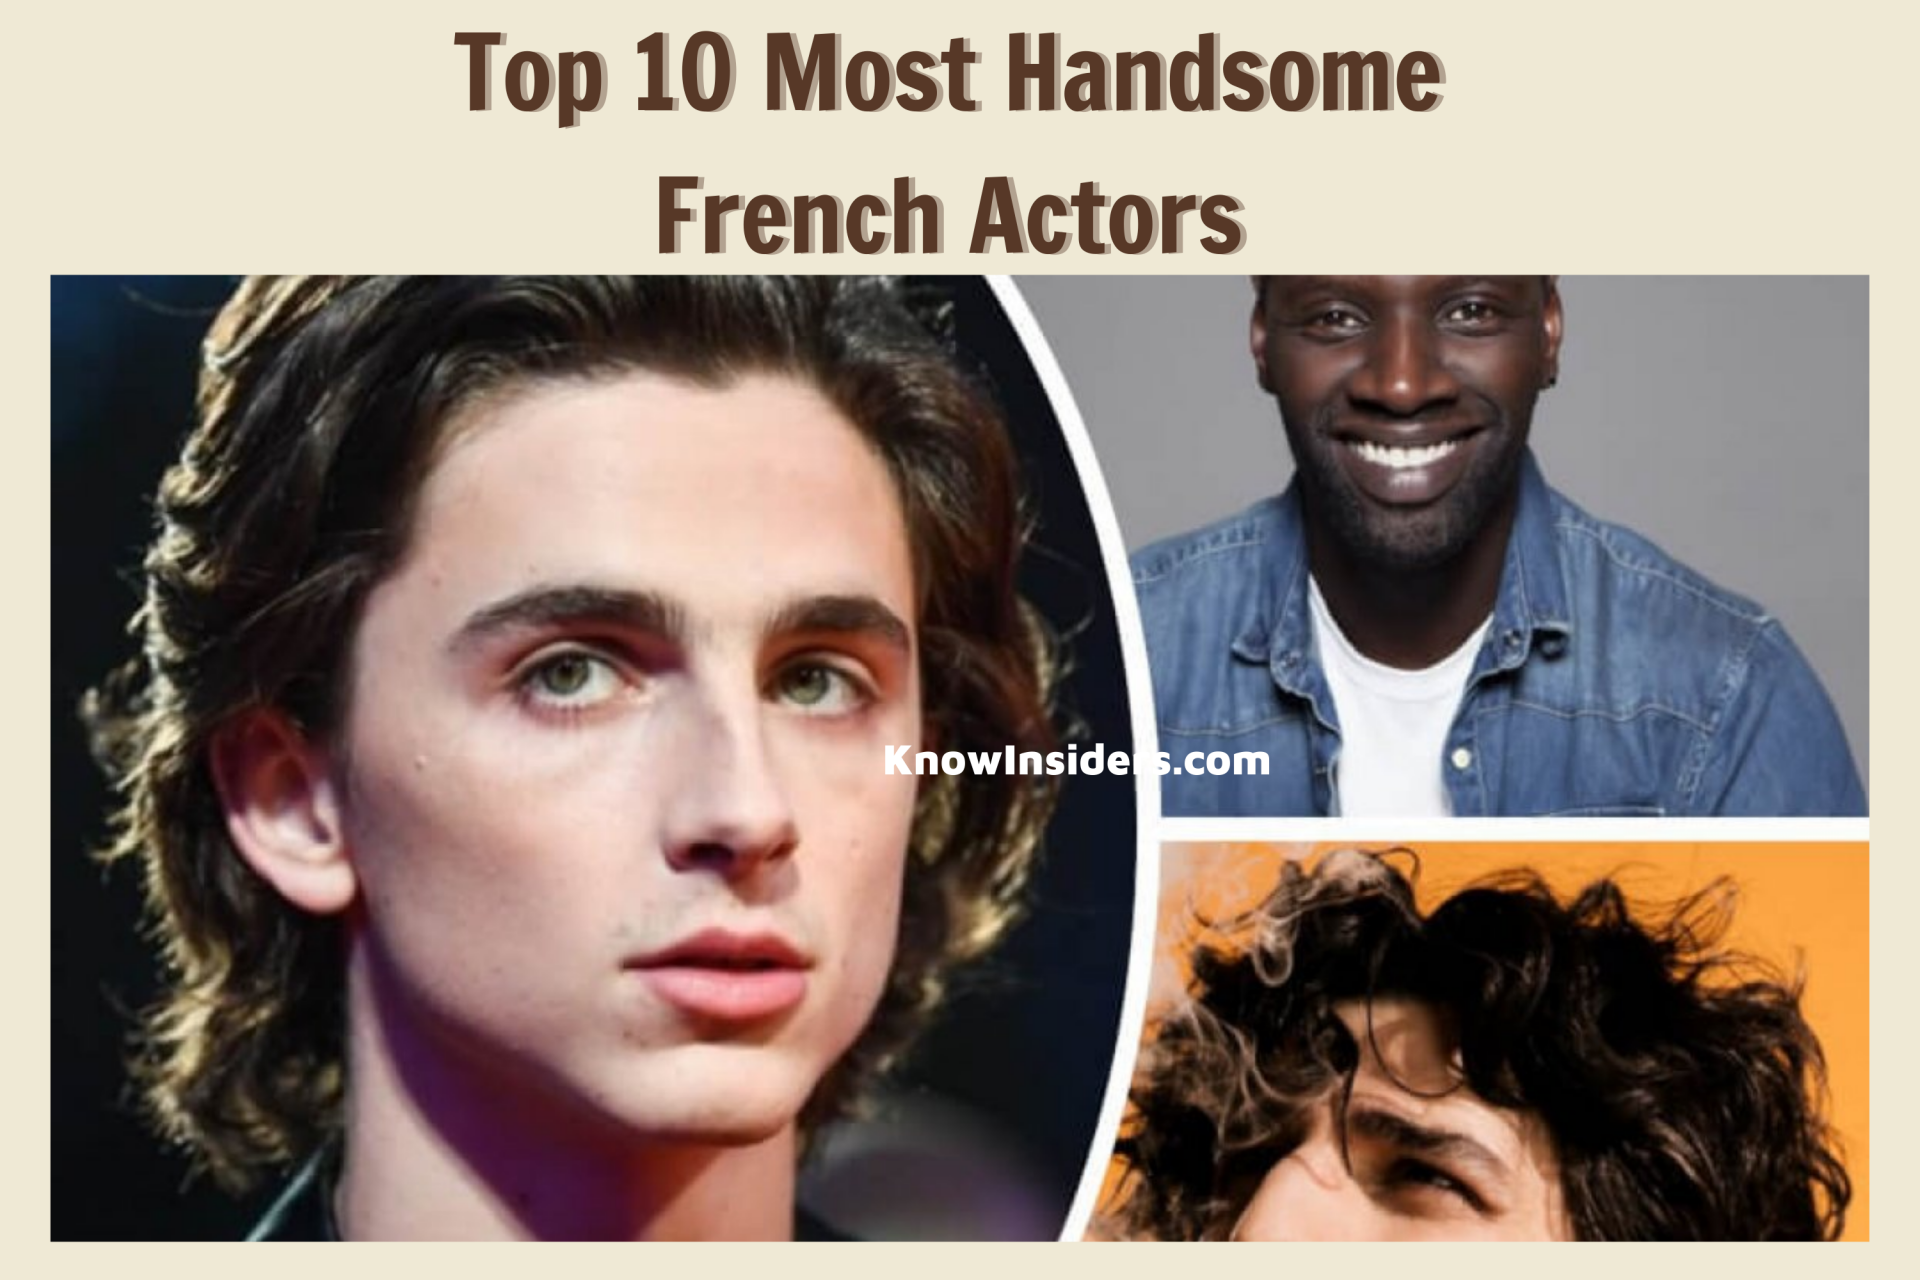 Top 10 Most Handsome French Actors - Updated